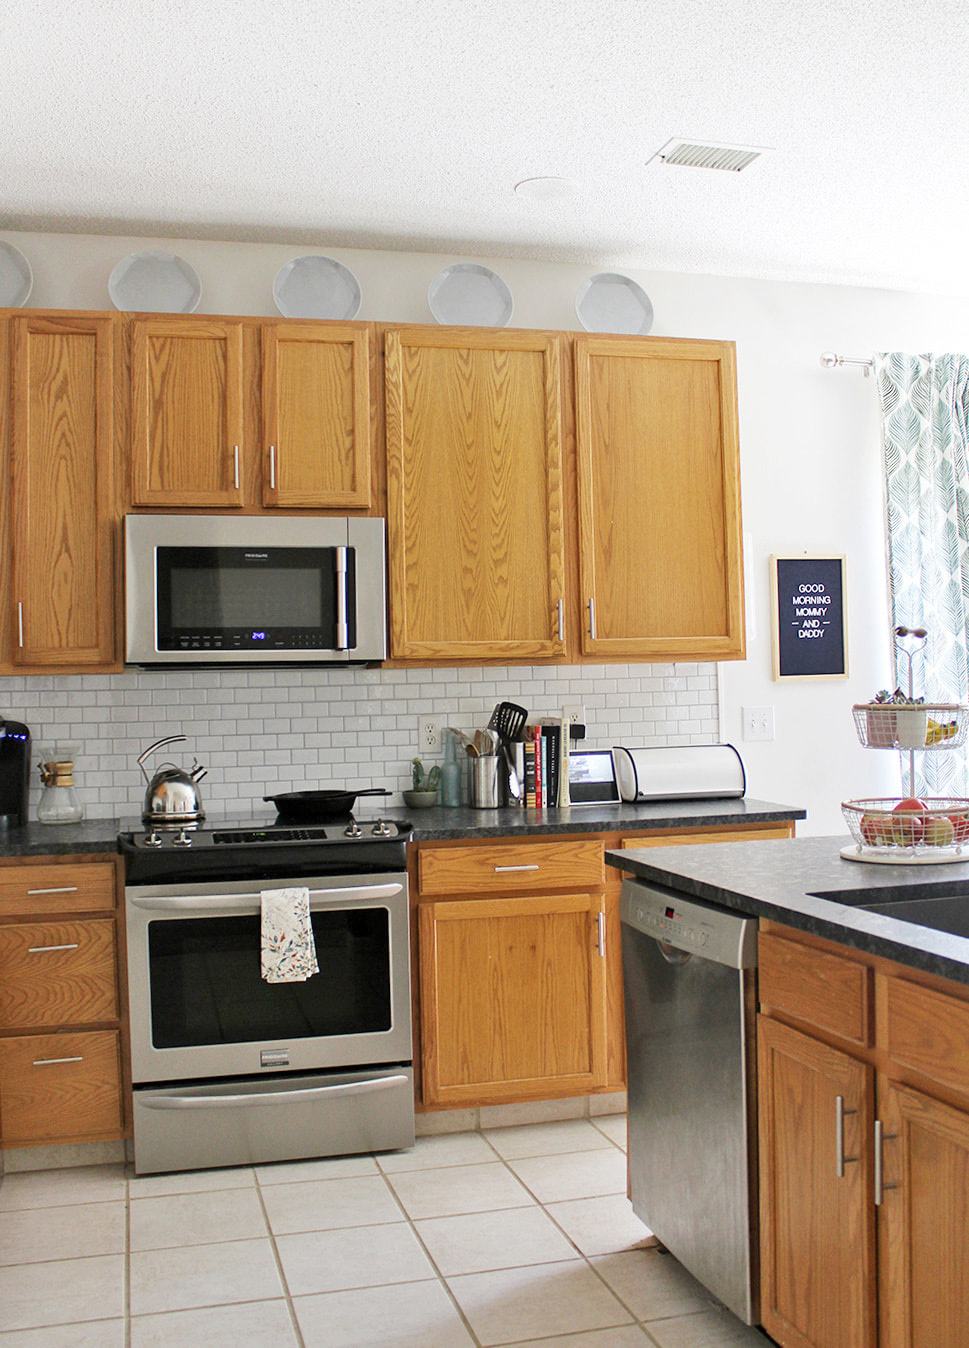 Decorating Over Kitchen Cabinets With Plates For Under $60 #kitchendecor  #budgetdecor